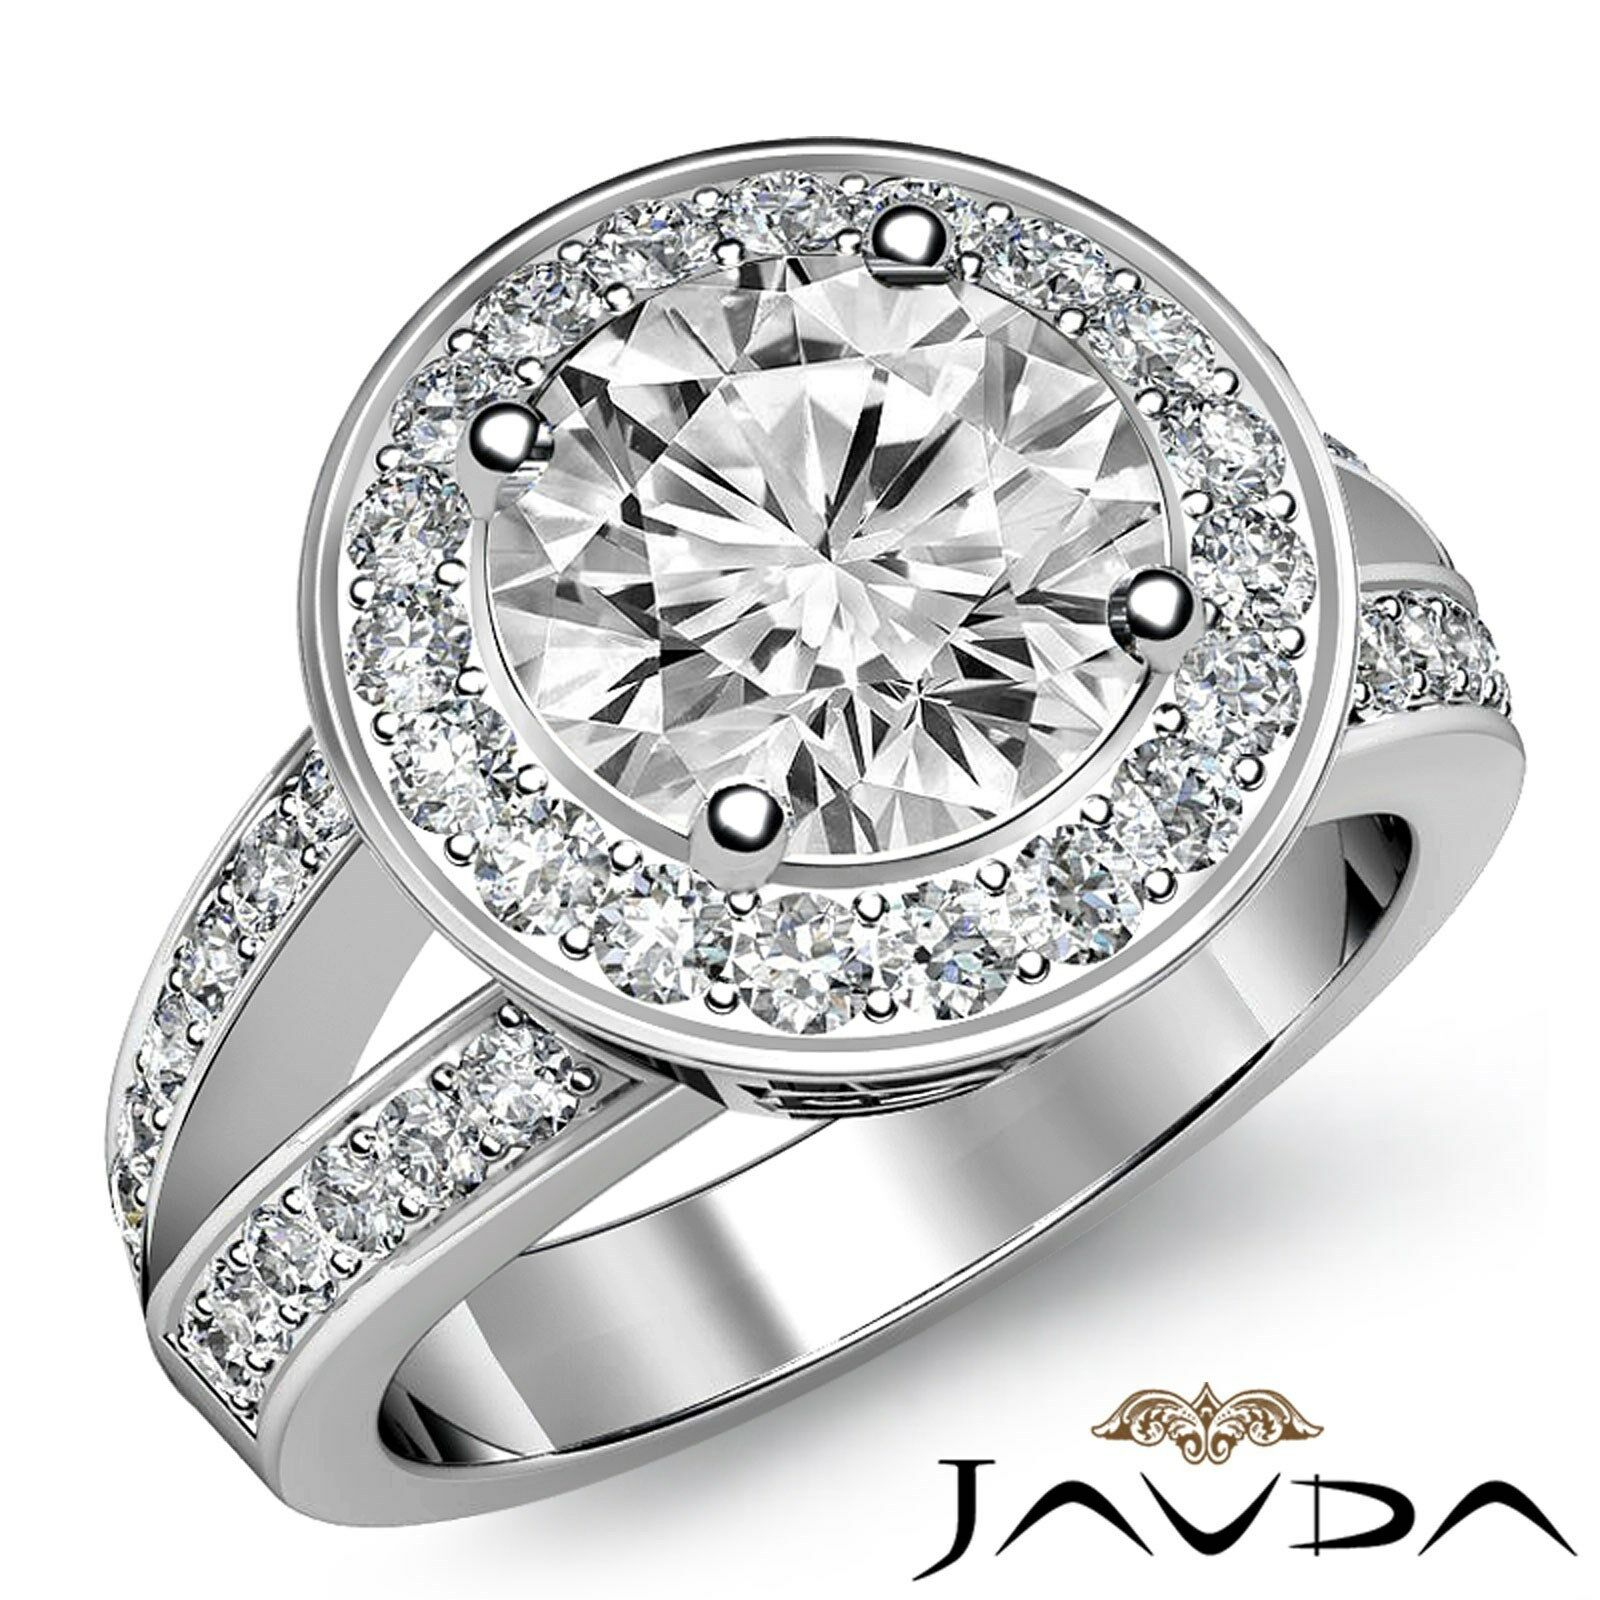 Halo Filigree Split Round Natural Diamond Engagement GIA I Color VS2 Ring 2.17Ct